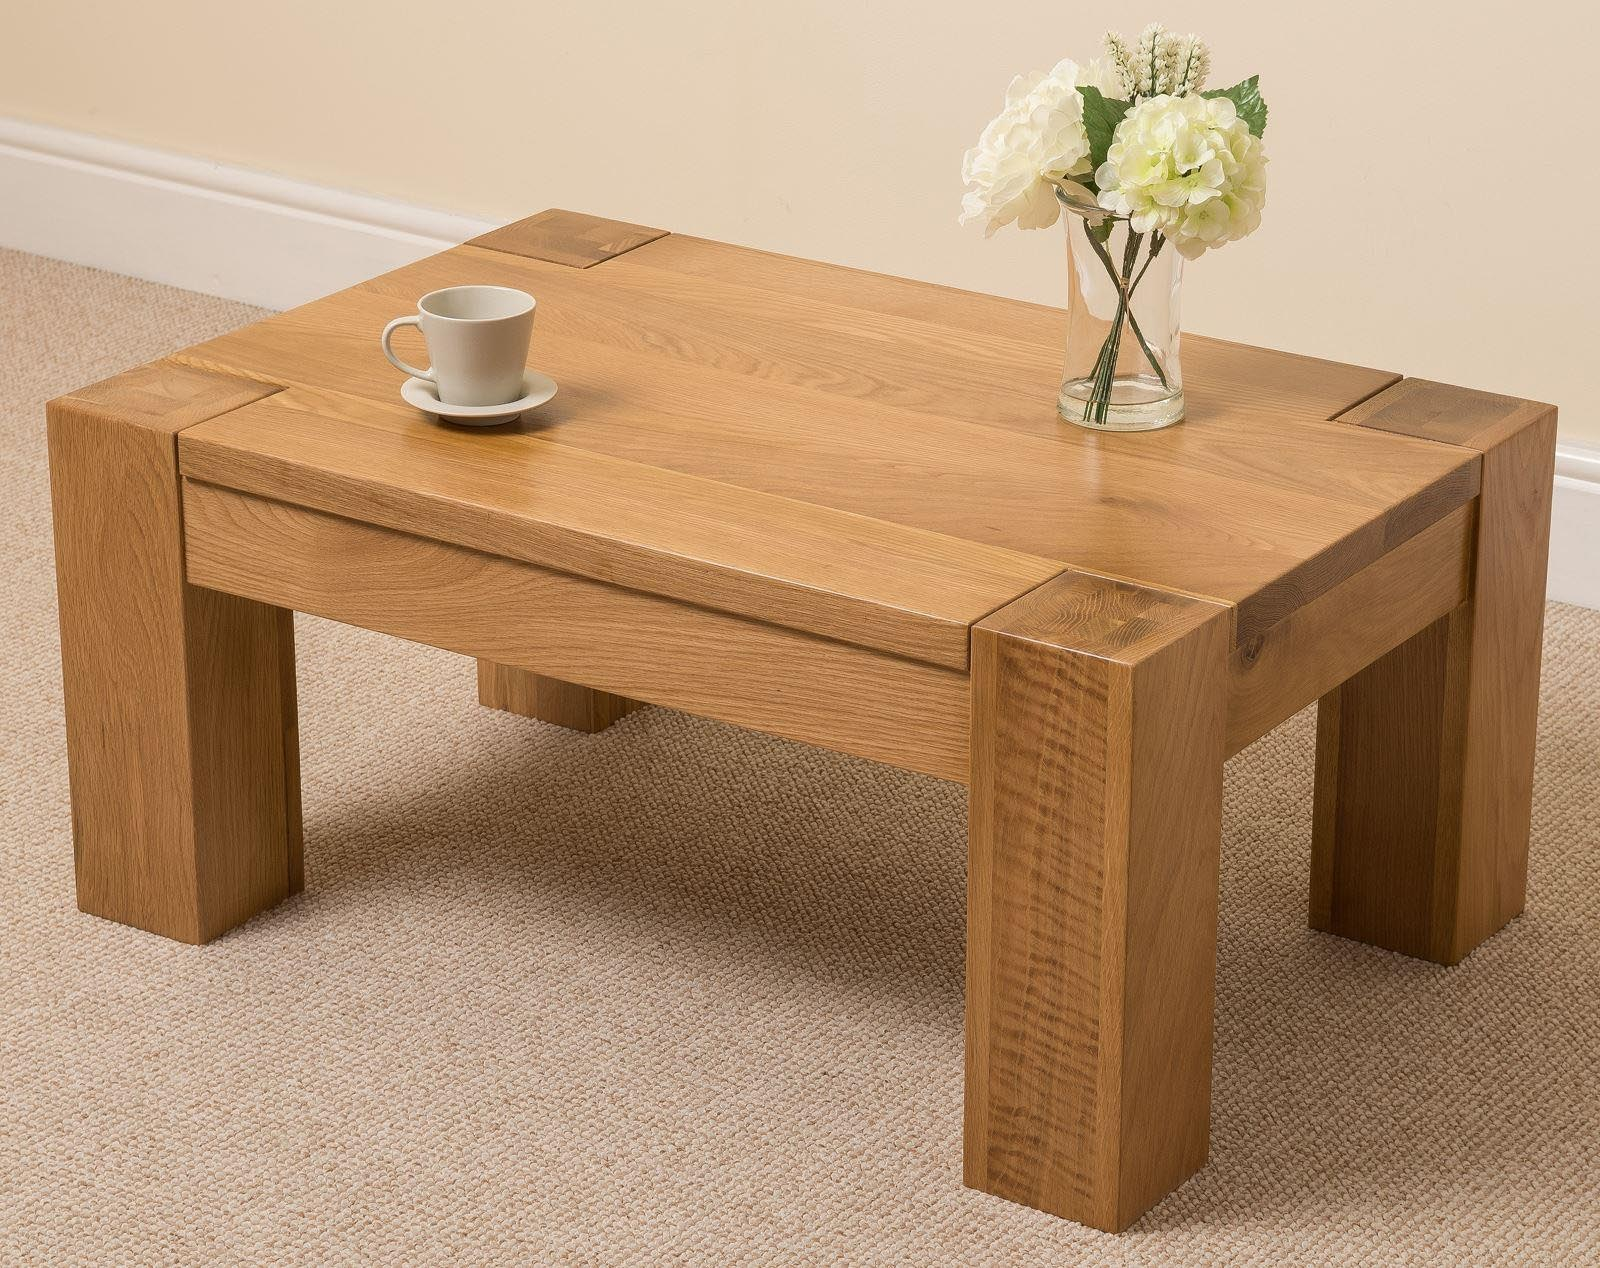 Pine wood coffee table coffee table design ideas for Pine coffee table